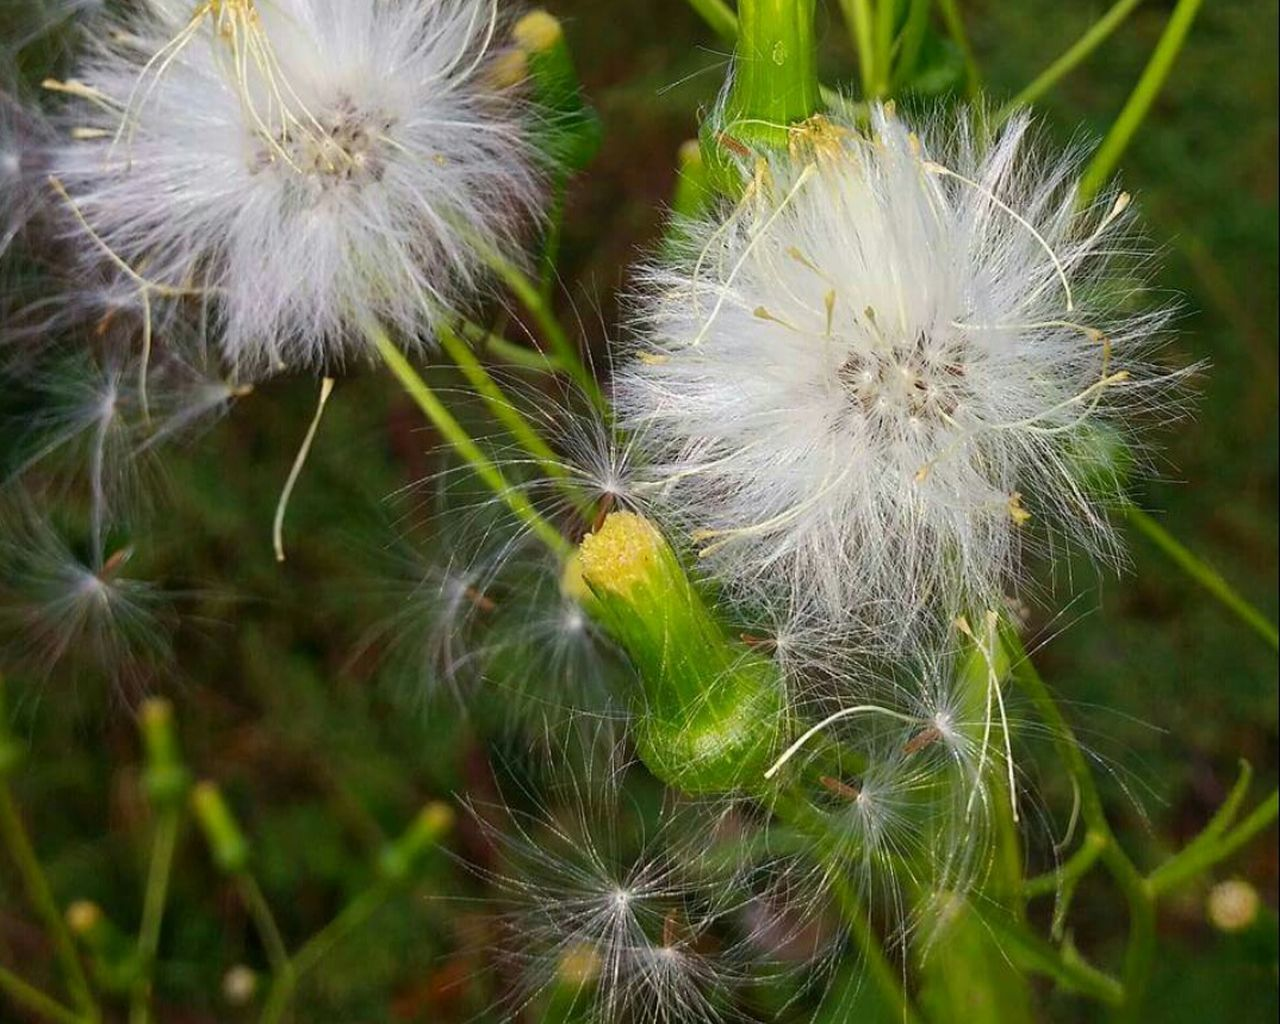 flower, dandelion, growth, nature, fragility, plant, freshness, delicate, flower head, beauty in nature, no people, close-up, outdoors, day